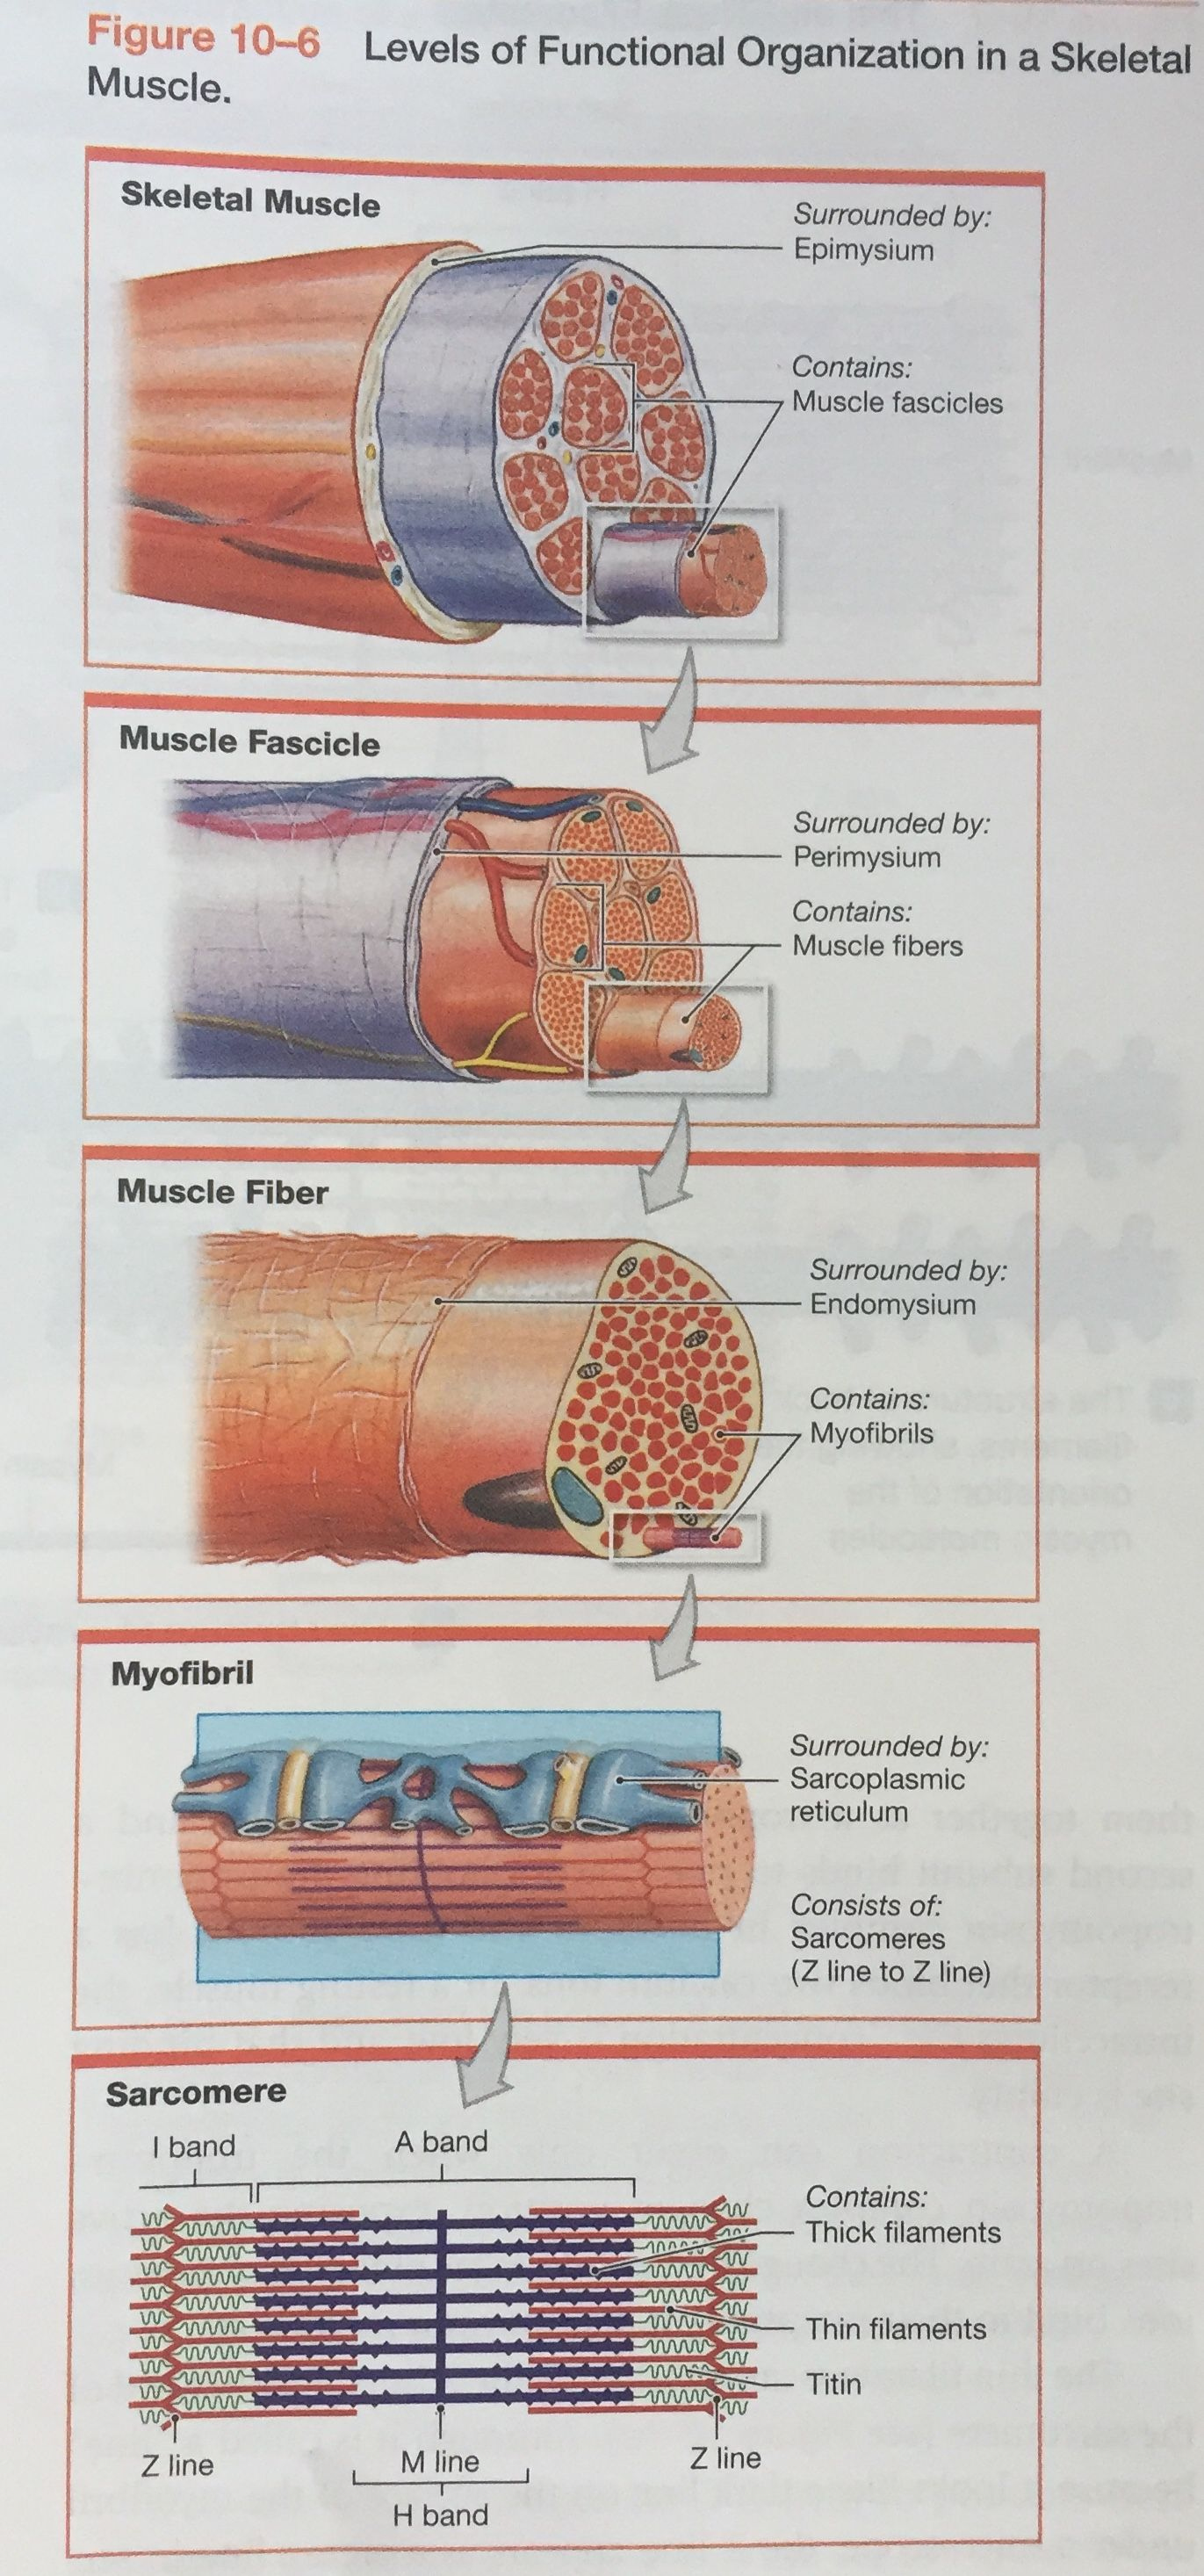 Levels Of Functional Organization In A Skeletal Muscle